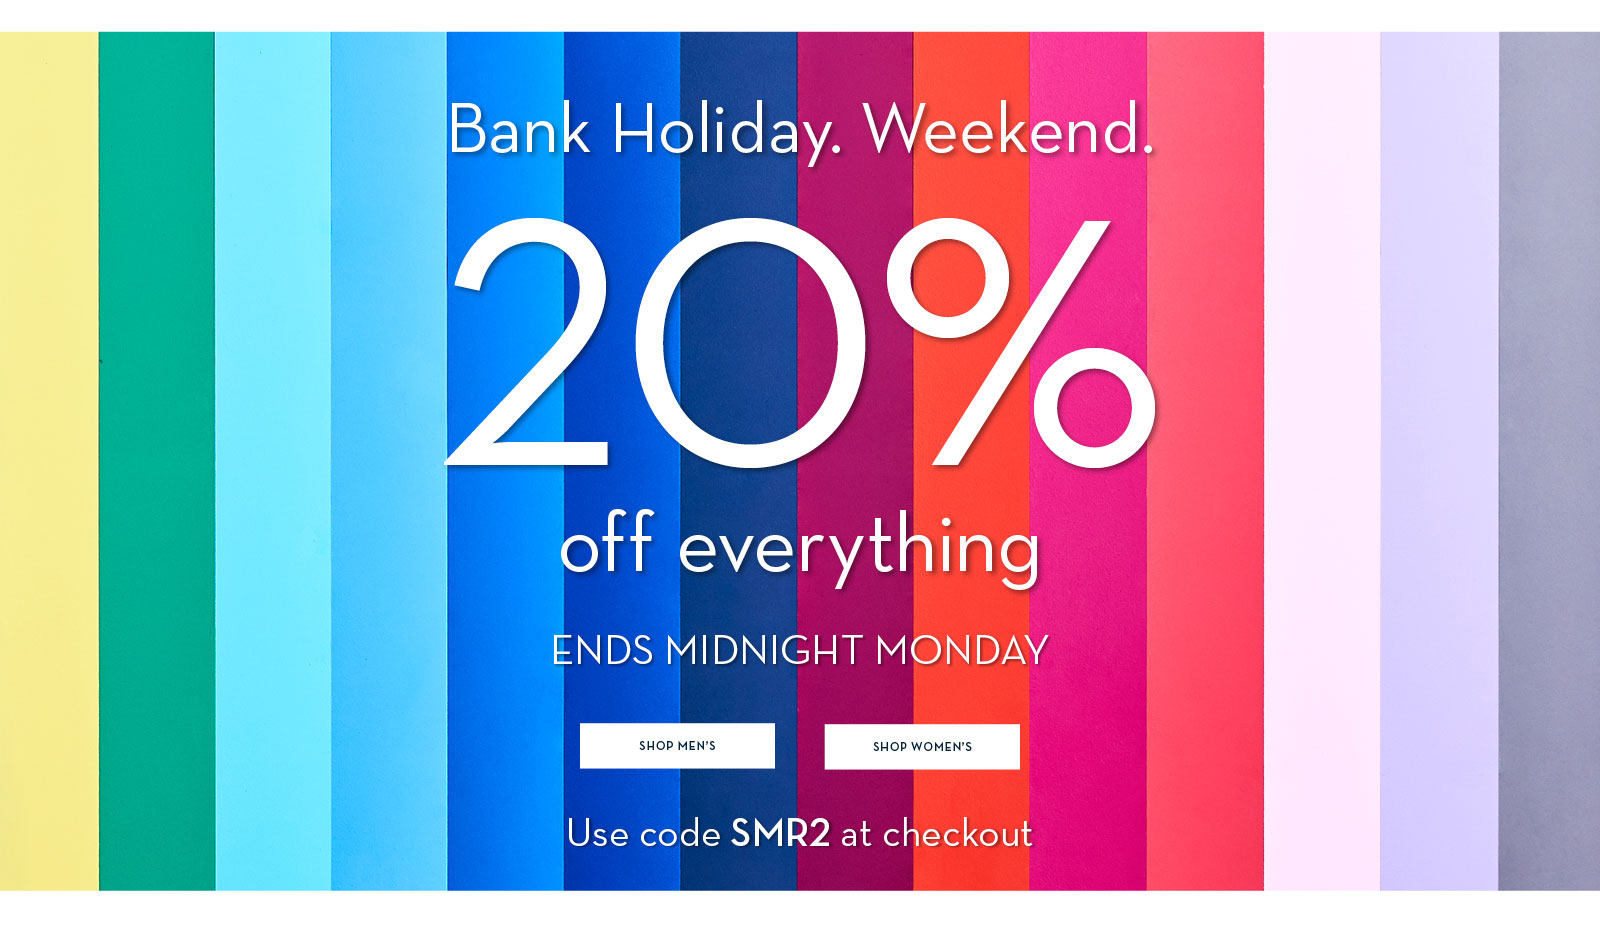 Bank Holiday. Weekend. 20% off everything